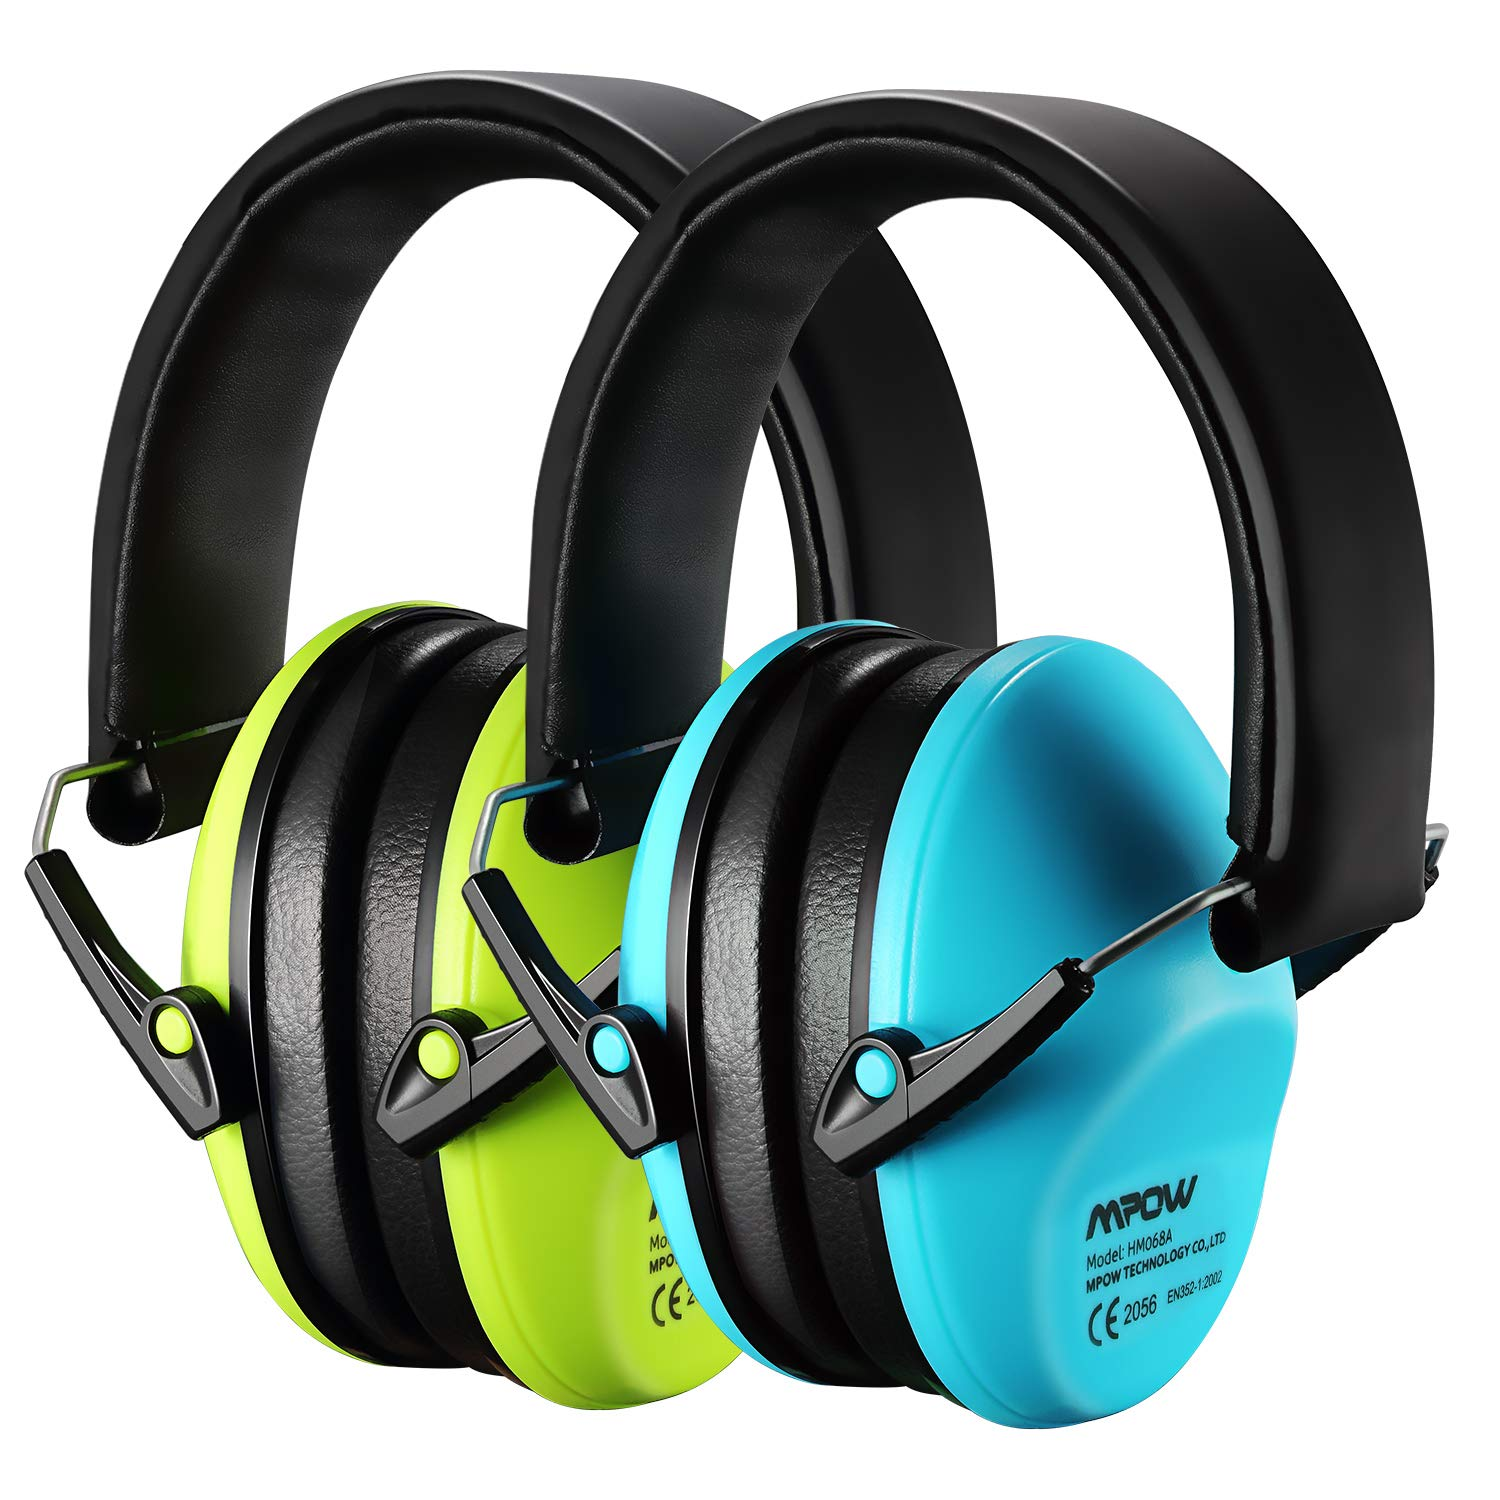 Mpow Kids Ear Protection 2 Pack, NRR 25dB Noise Reduction, Hearing Protection for Kids, Toddler Ear Protection for Hunting Season, Shooting Range, Car Race, Traveling, with Carrying Bags-Blue&Green by Mpow